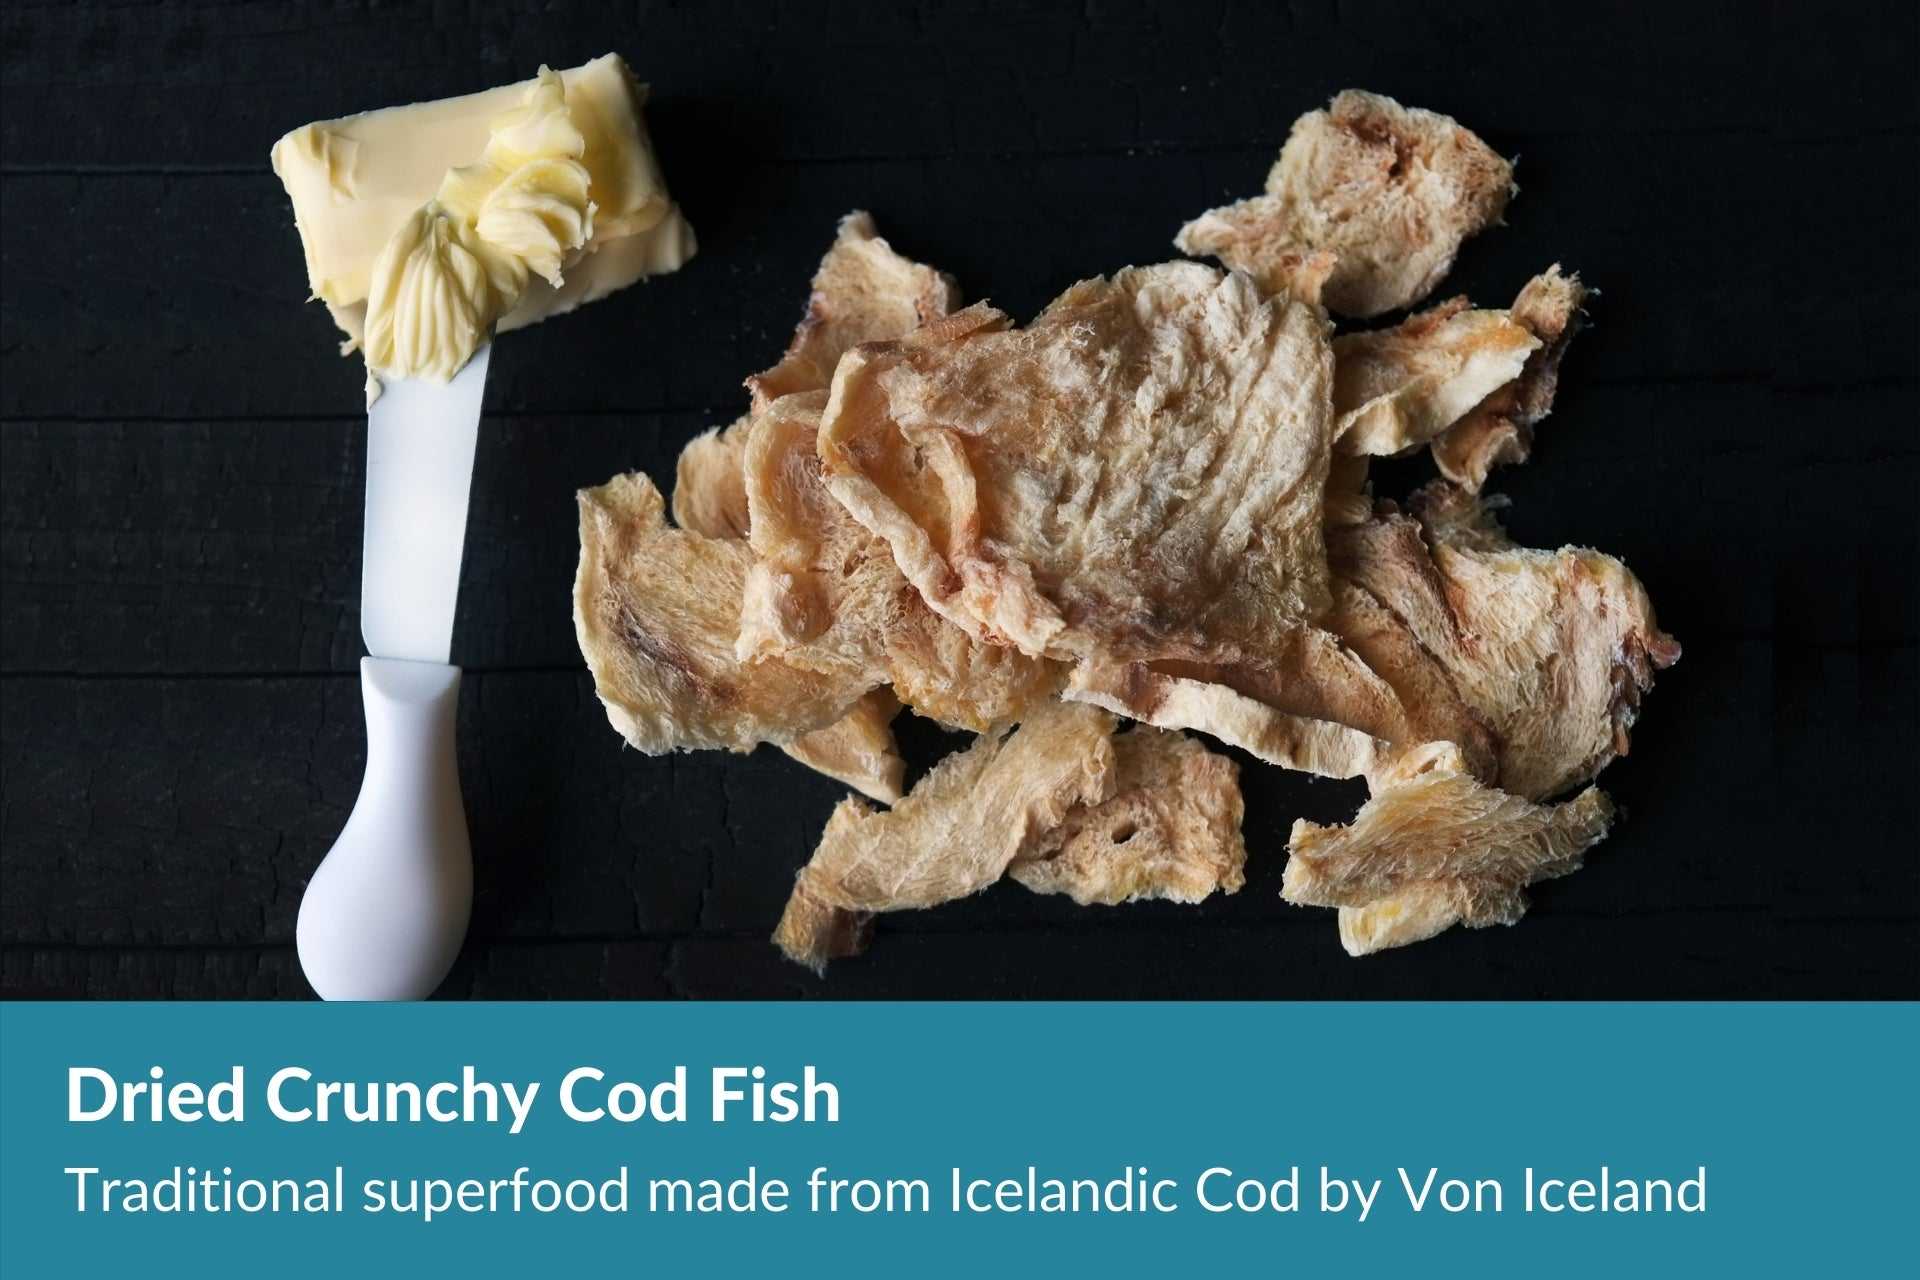 Dried crunchy cod fish by Von Iceland